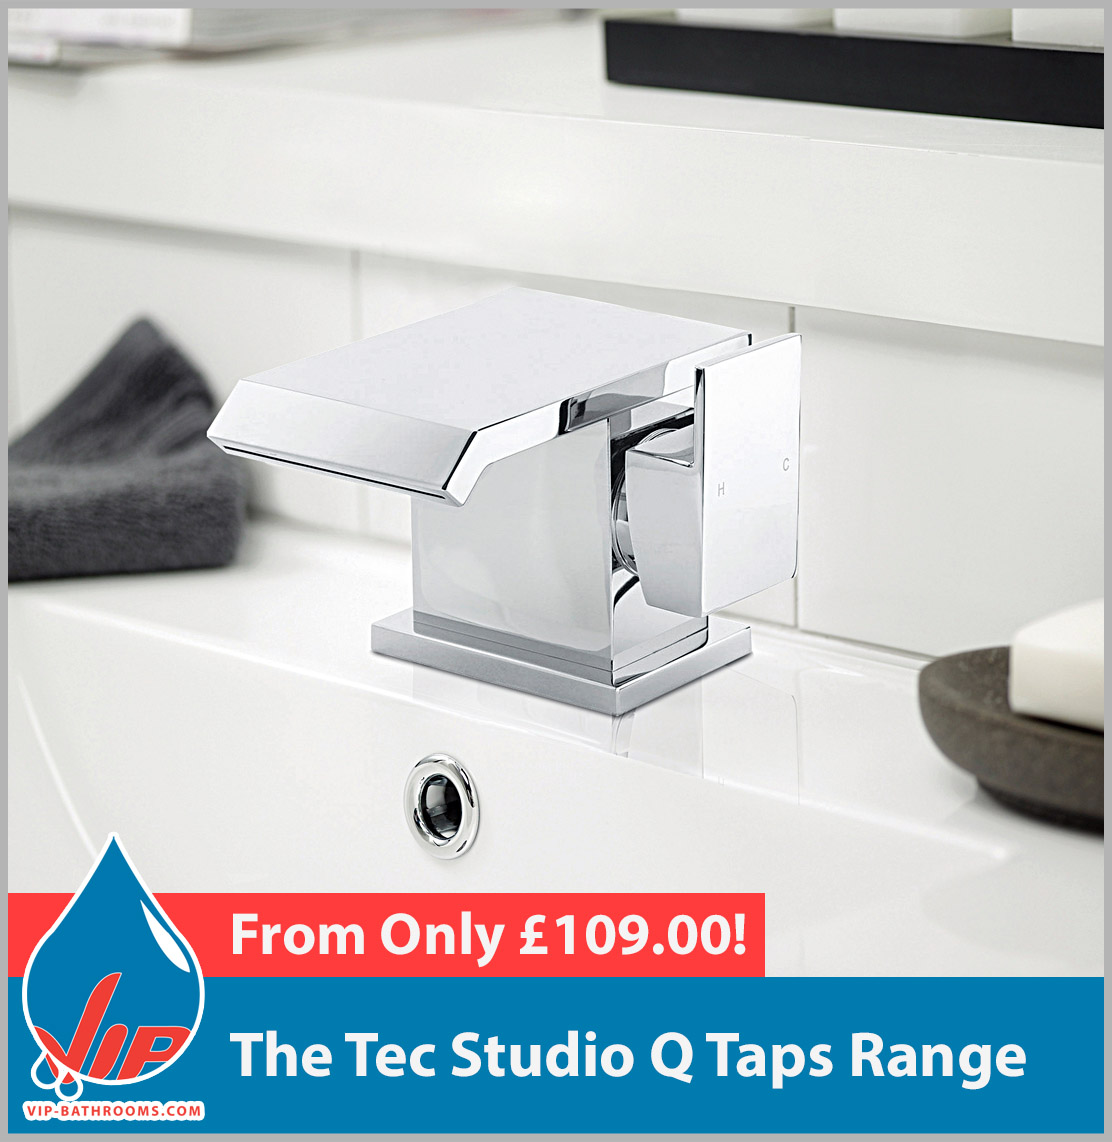 Click here to view the Tec Studio Q range of high quality designer Bathroom Taps